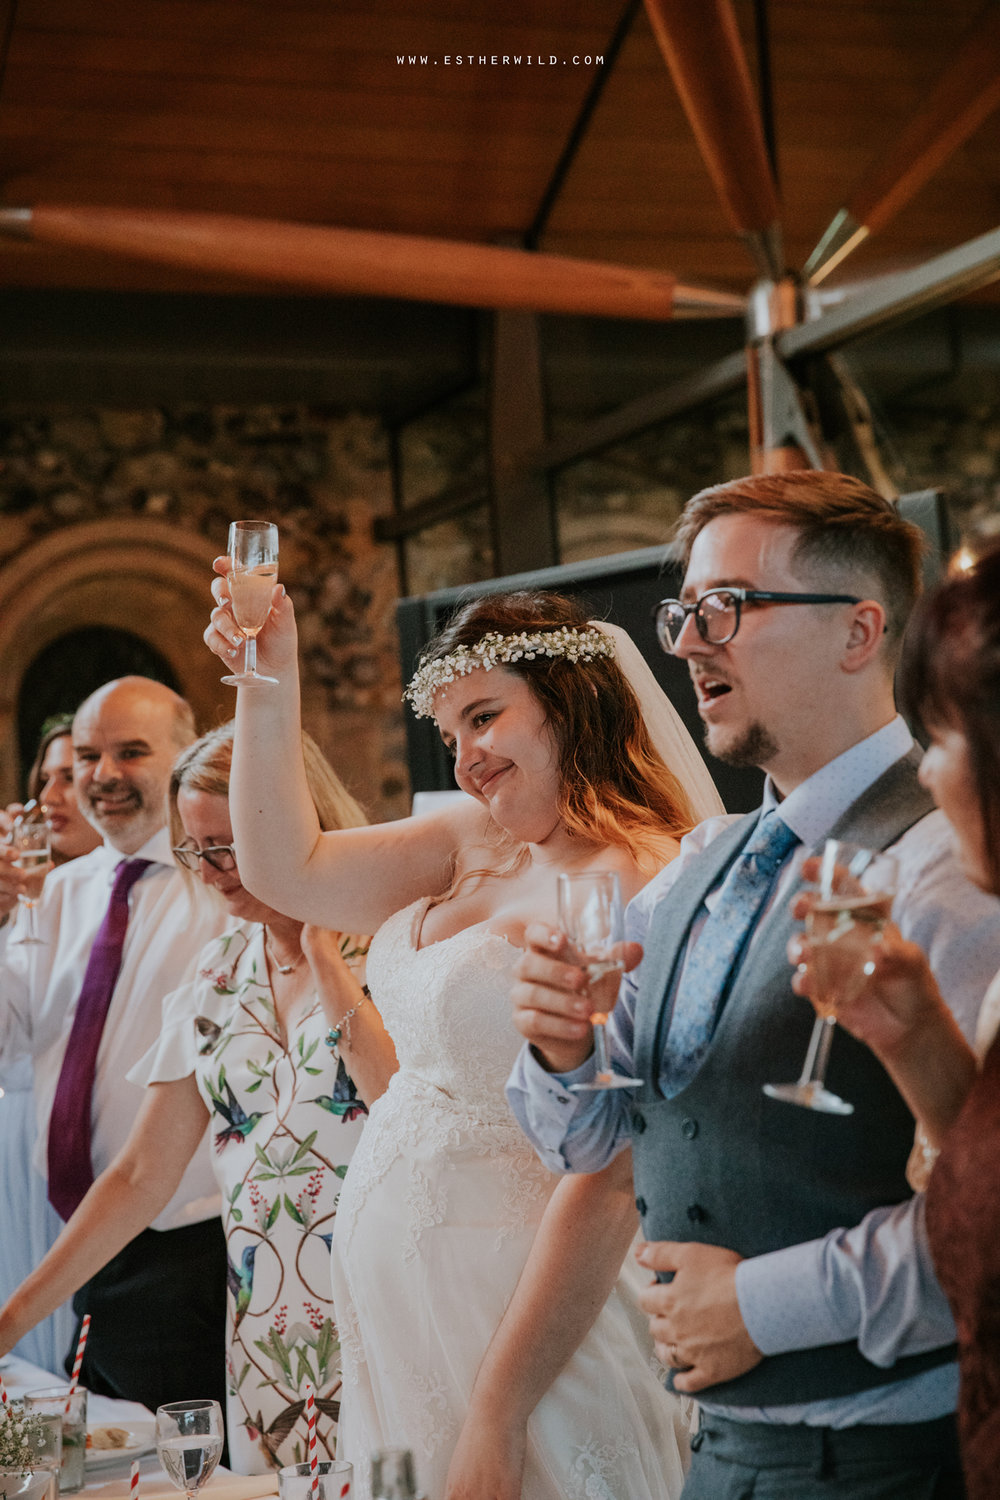 Norwich_Castle_Arcade_Grosvenor_Chip_Birdcage_Cathedral_Cloisters_Refectory_Wedding_Photography_Esther_Wild_Photographer_Norfolk_Kings_Lynn_3R8A3114.jpg